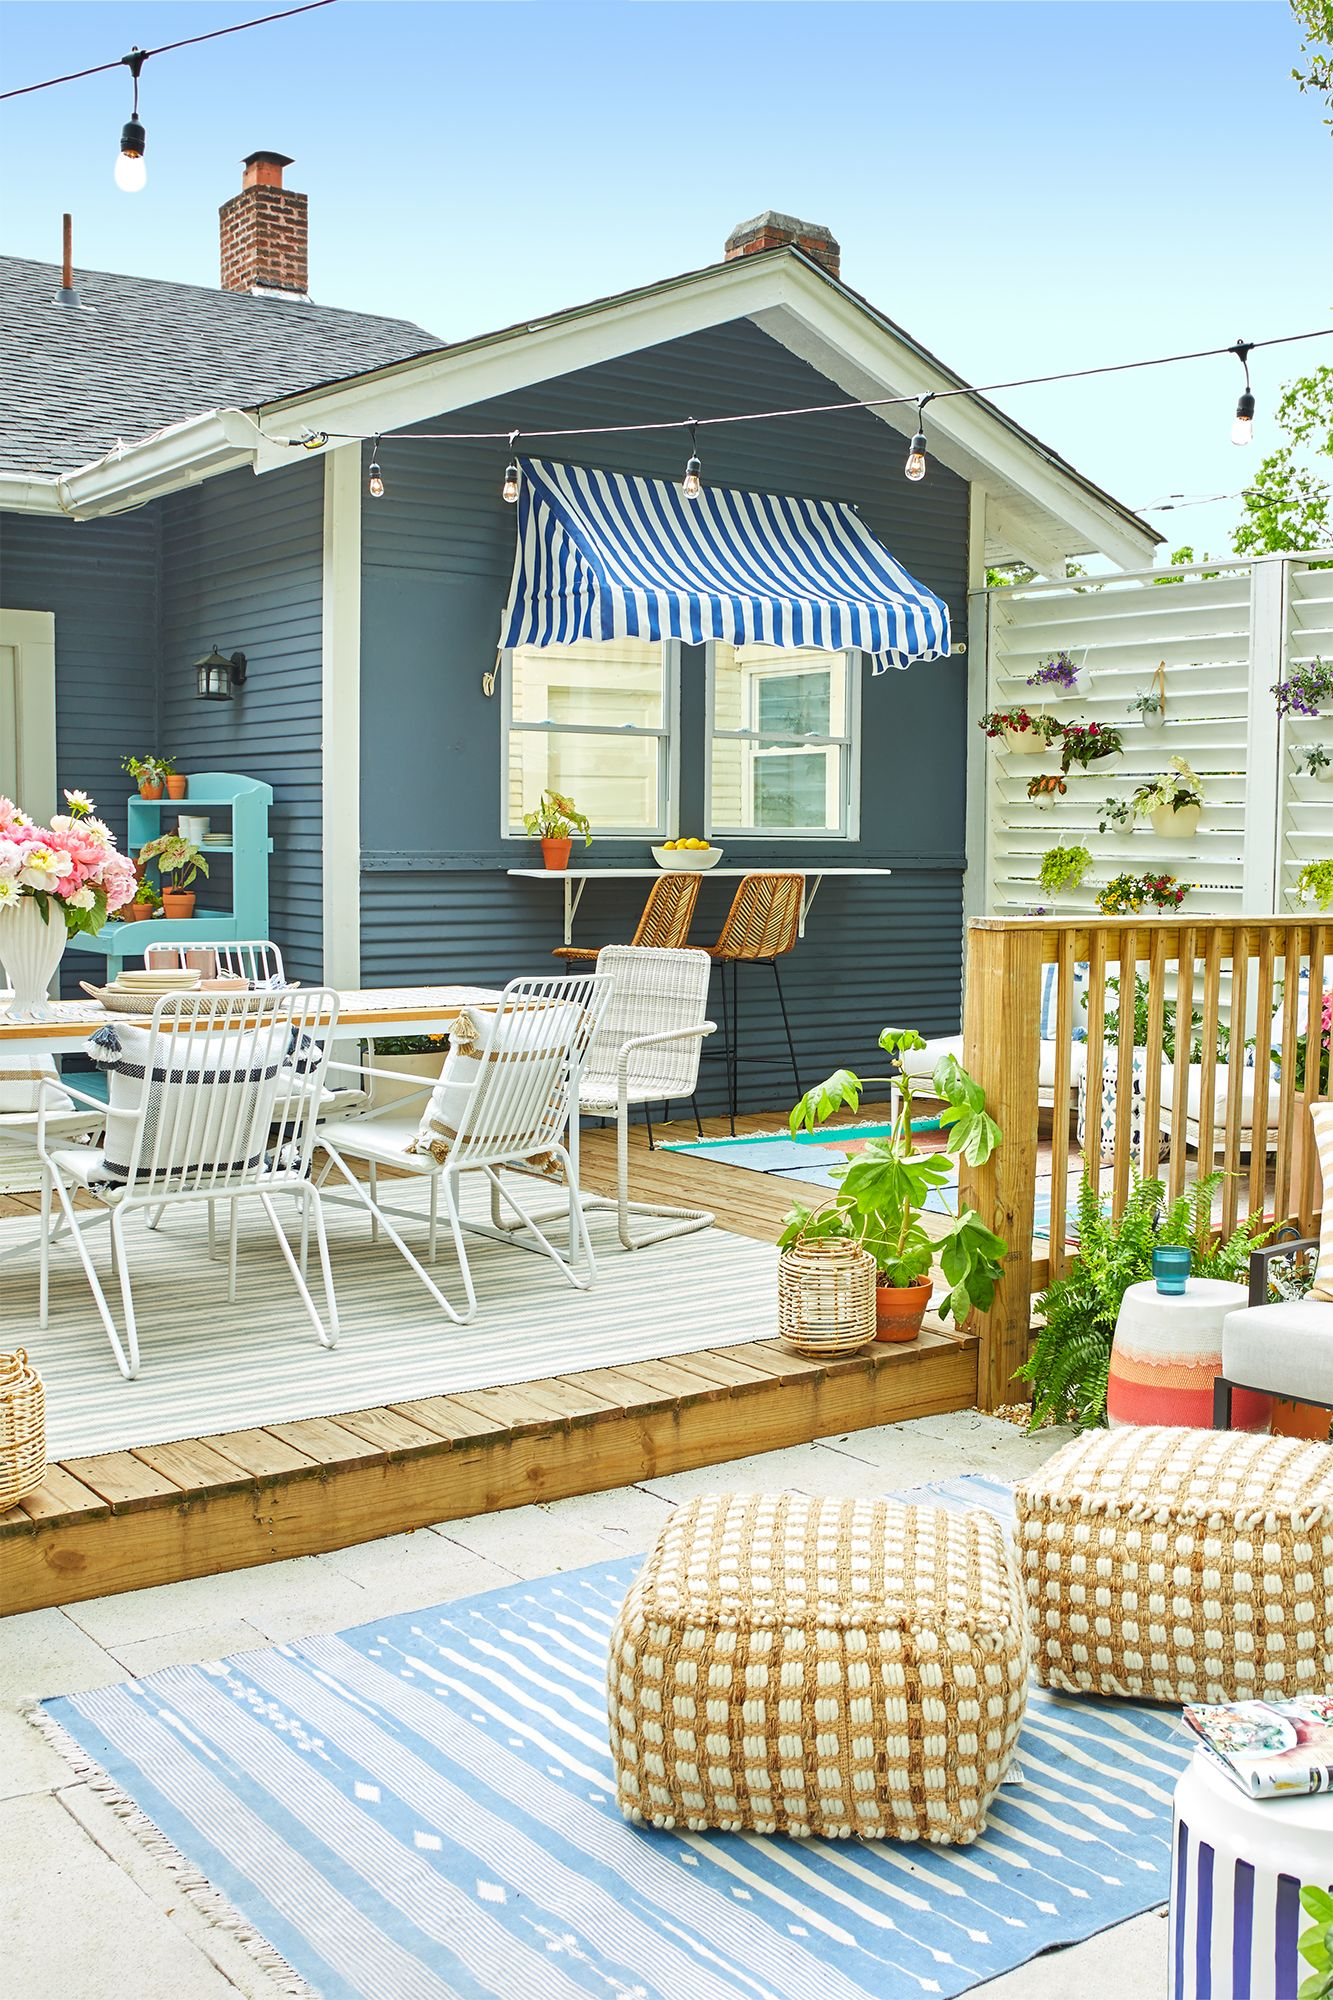 25 Small Backyard Ideas Landscaping And Patio Designs